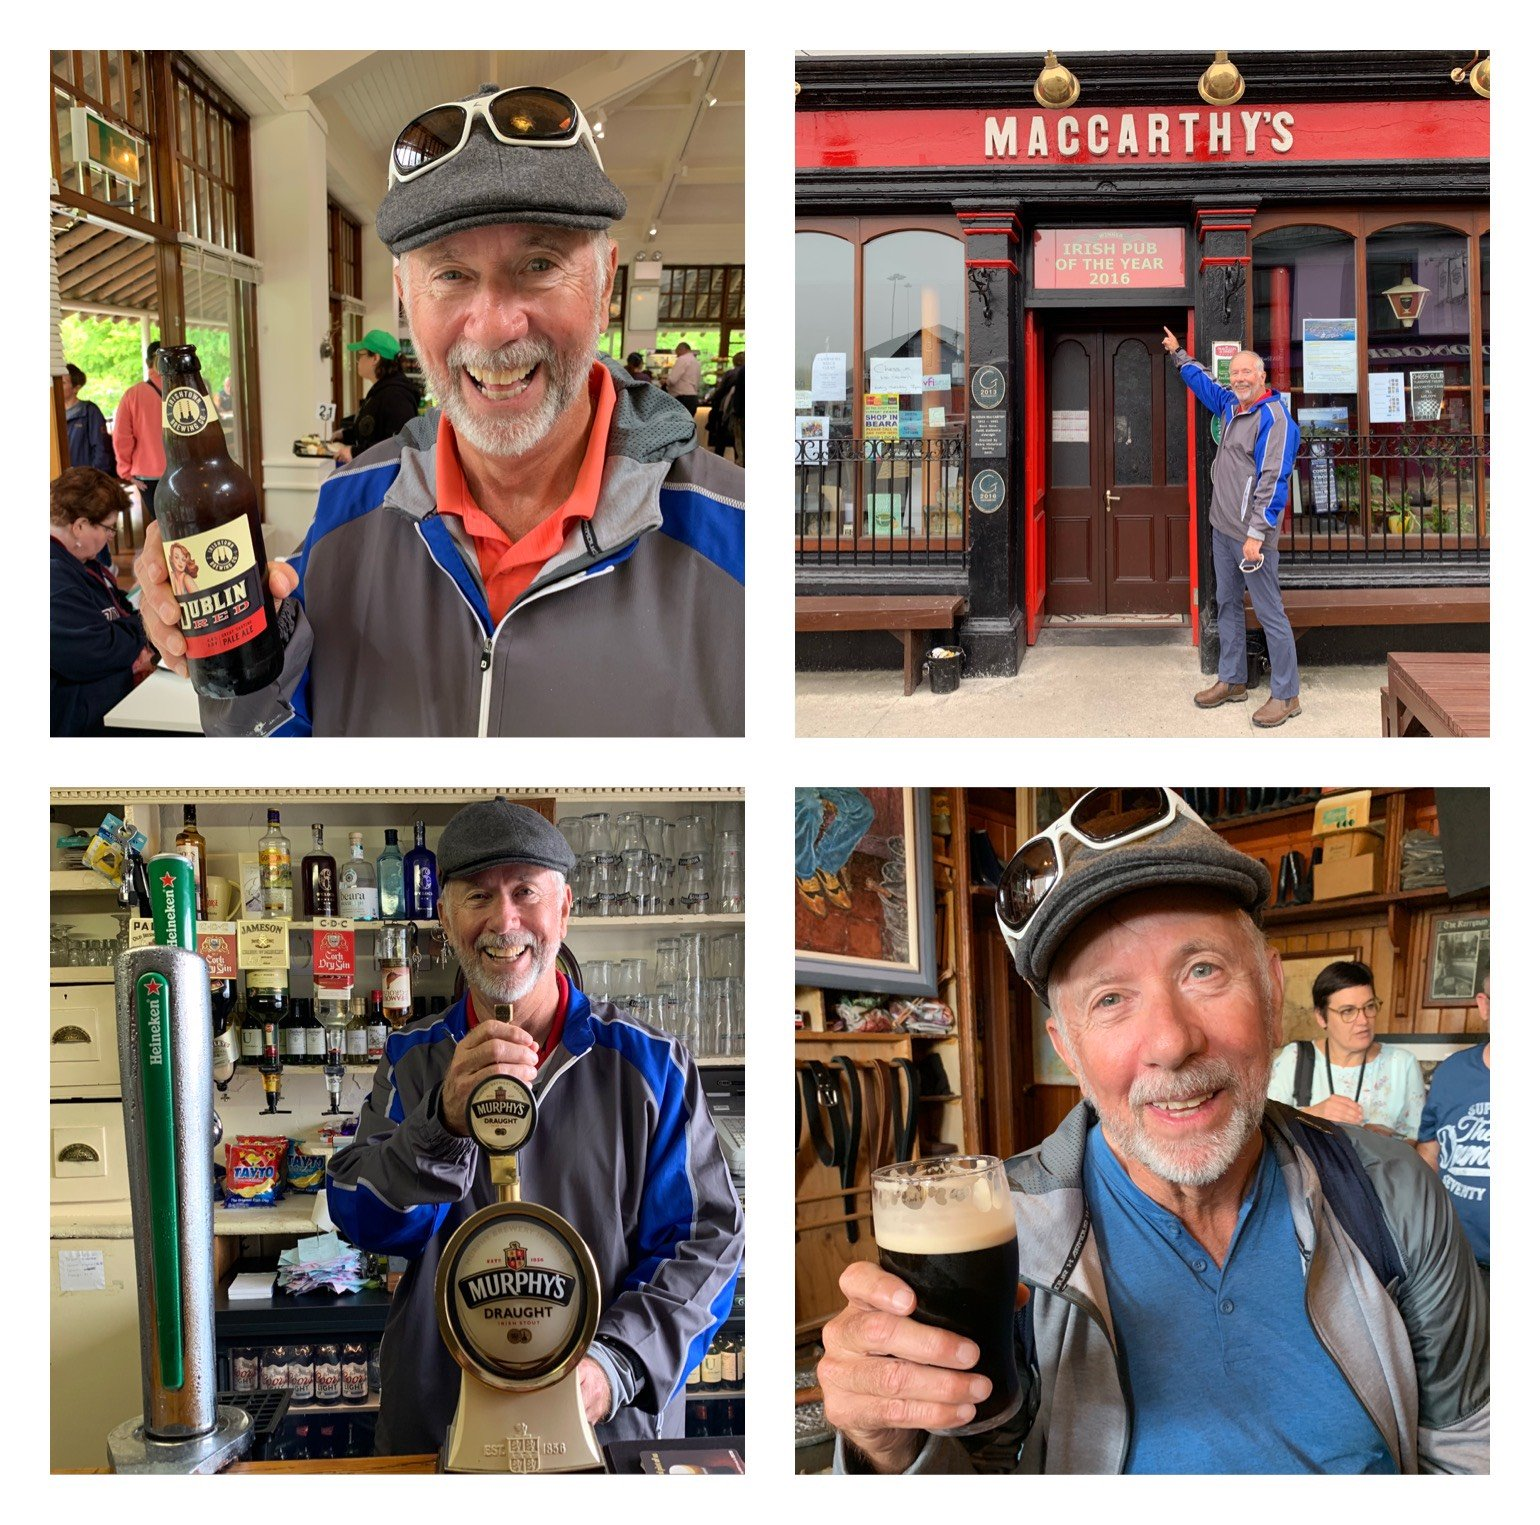 Berl Wyatt enjoying one of many beers in Ireland!